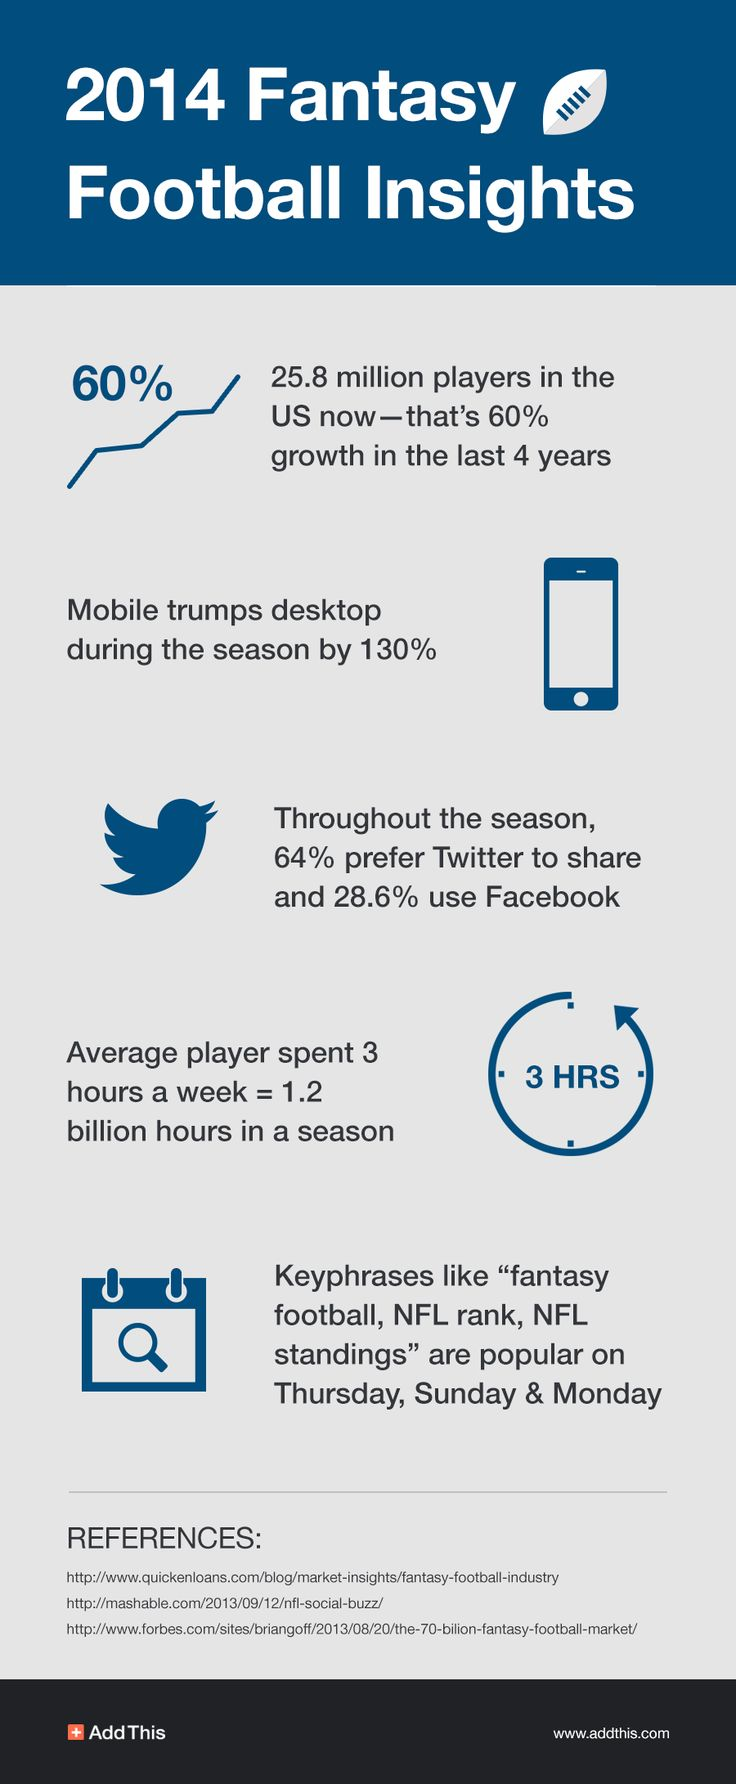 [INFOGRAPHIC] Fantasy football's here & we've got tips to help you create content that fans will enjoy! Read more >> http://www.addthis.com/blog/2014/08/26/5-tips-to-increase-your-site-traffic-during-fantasy-football-season/#.U_yIc0jkYne